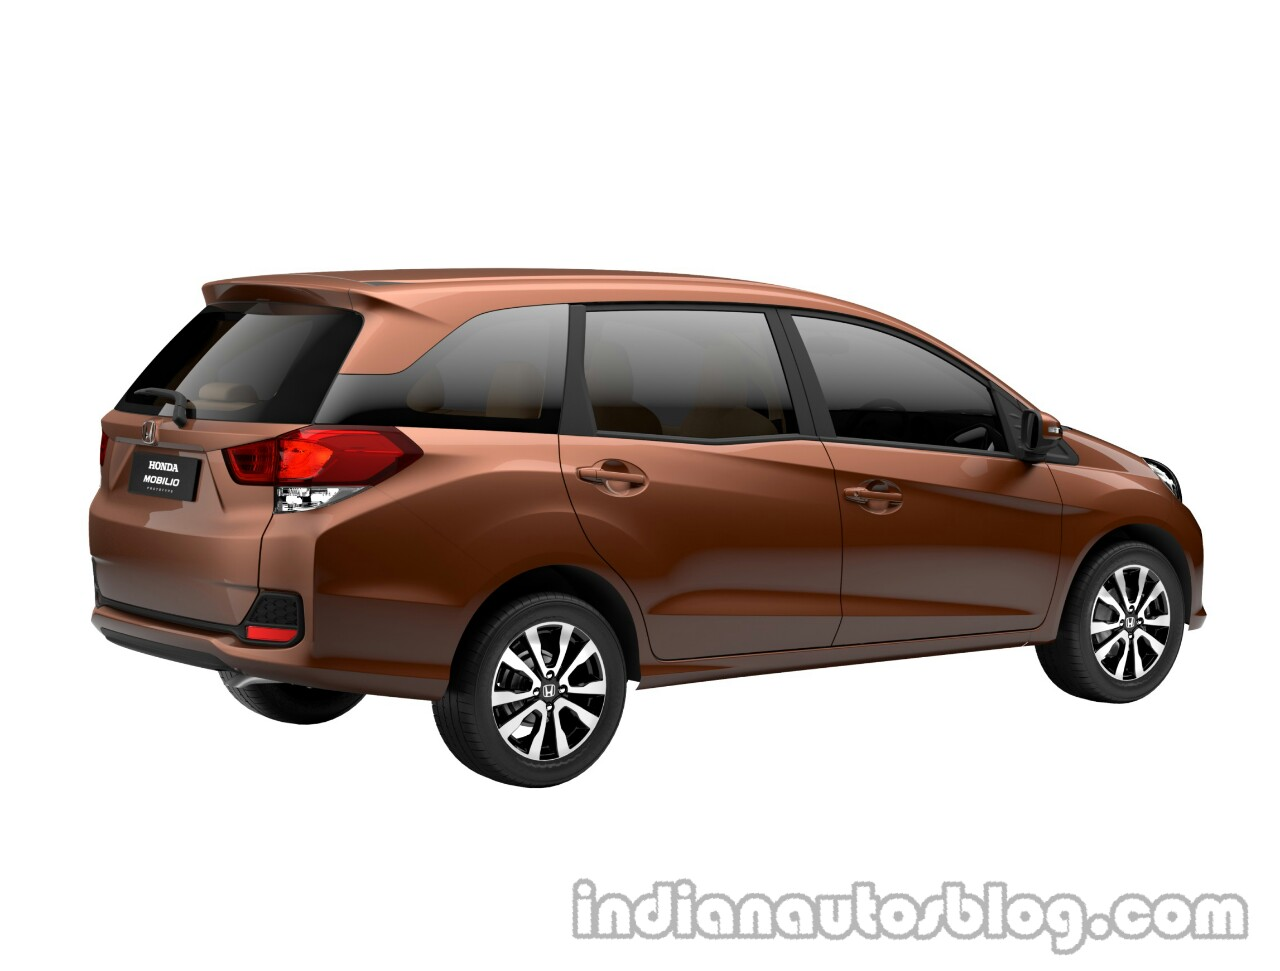 Ertiga diesel car price in india 2017 11